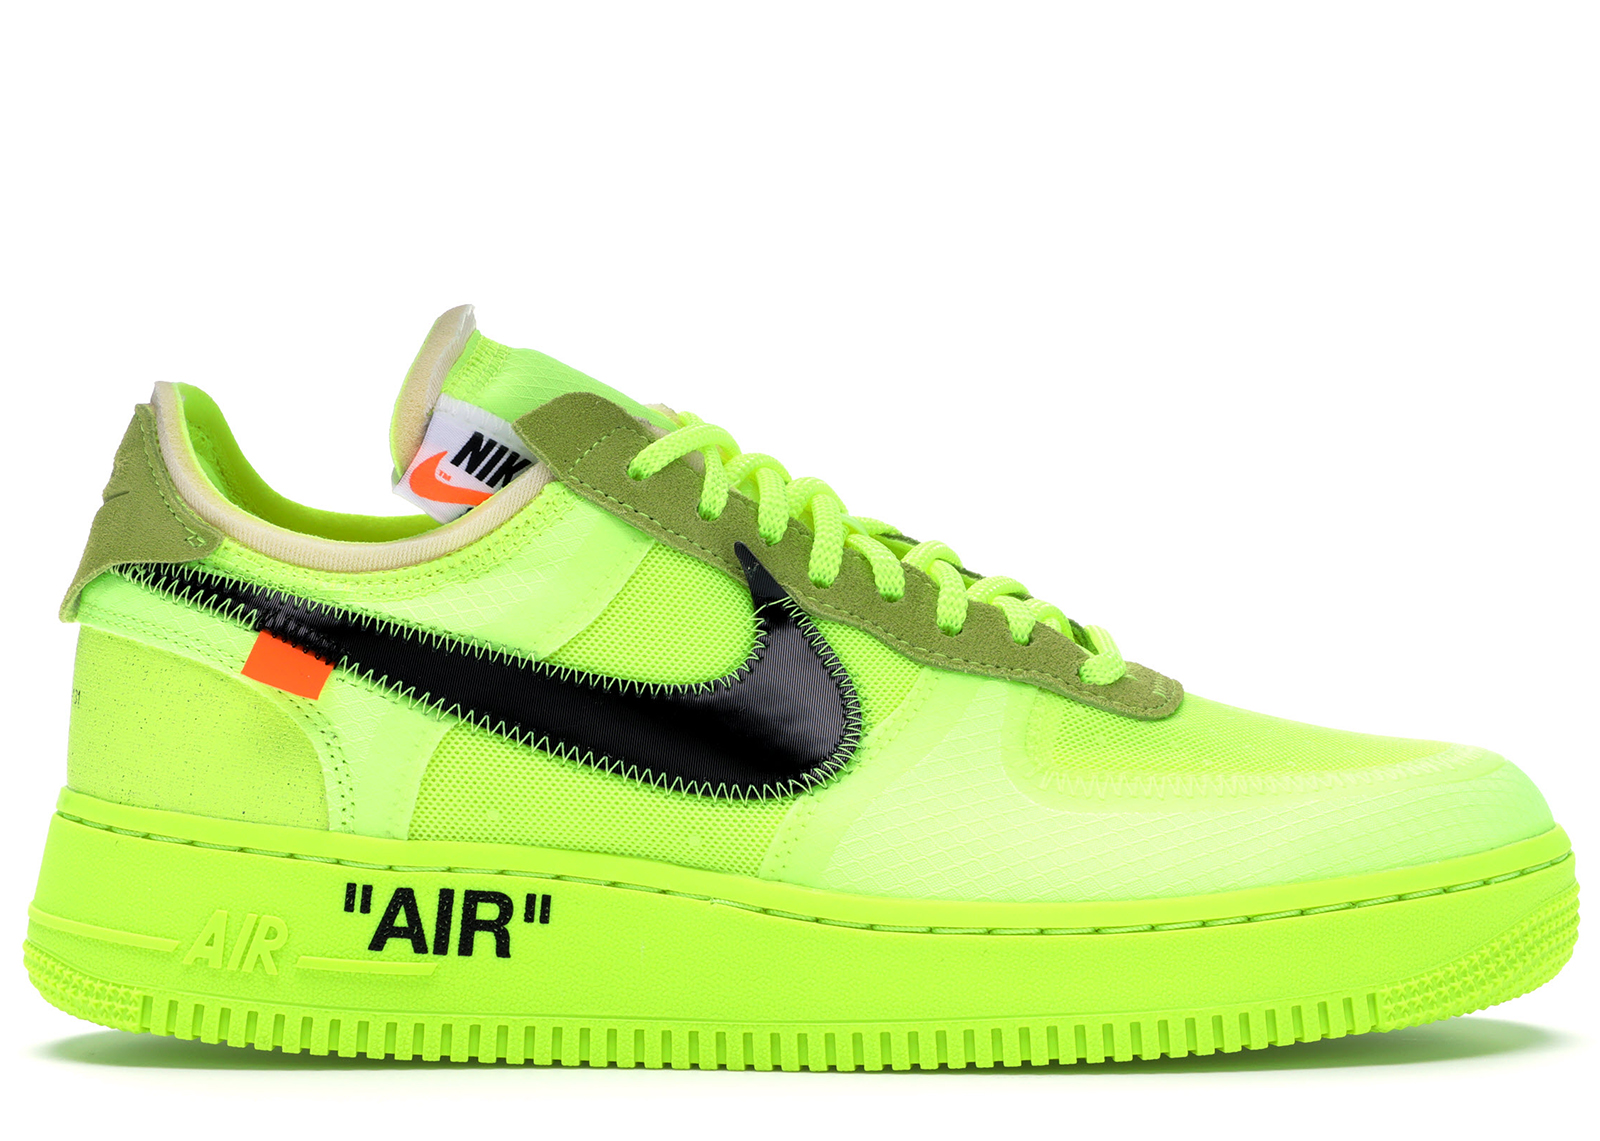 2scarpe nike air force 1 off white